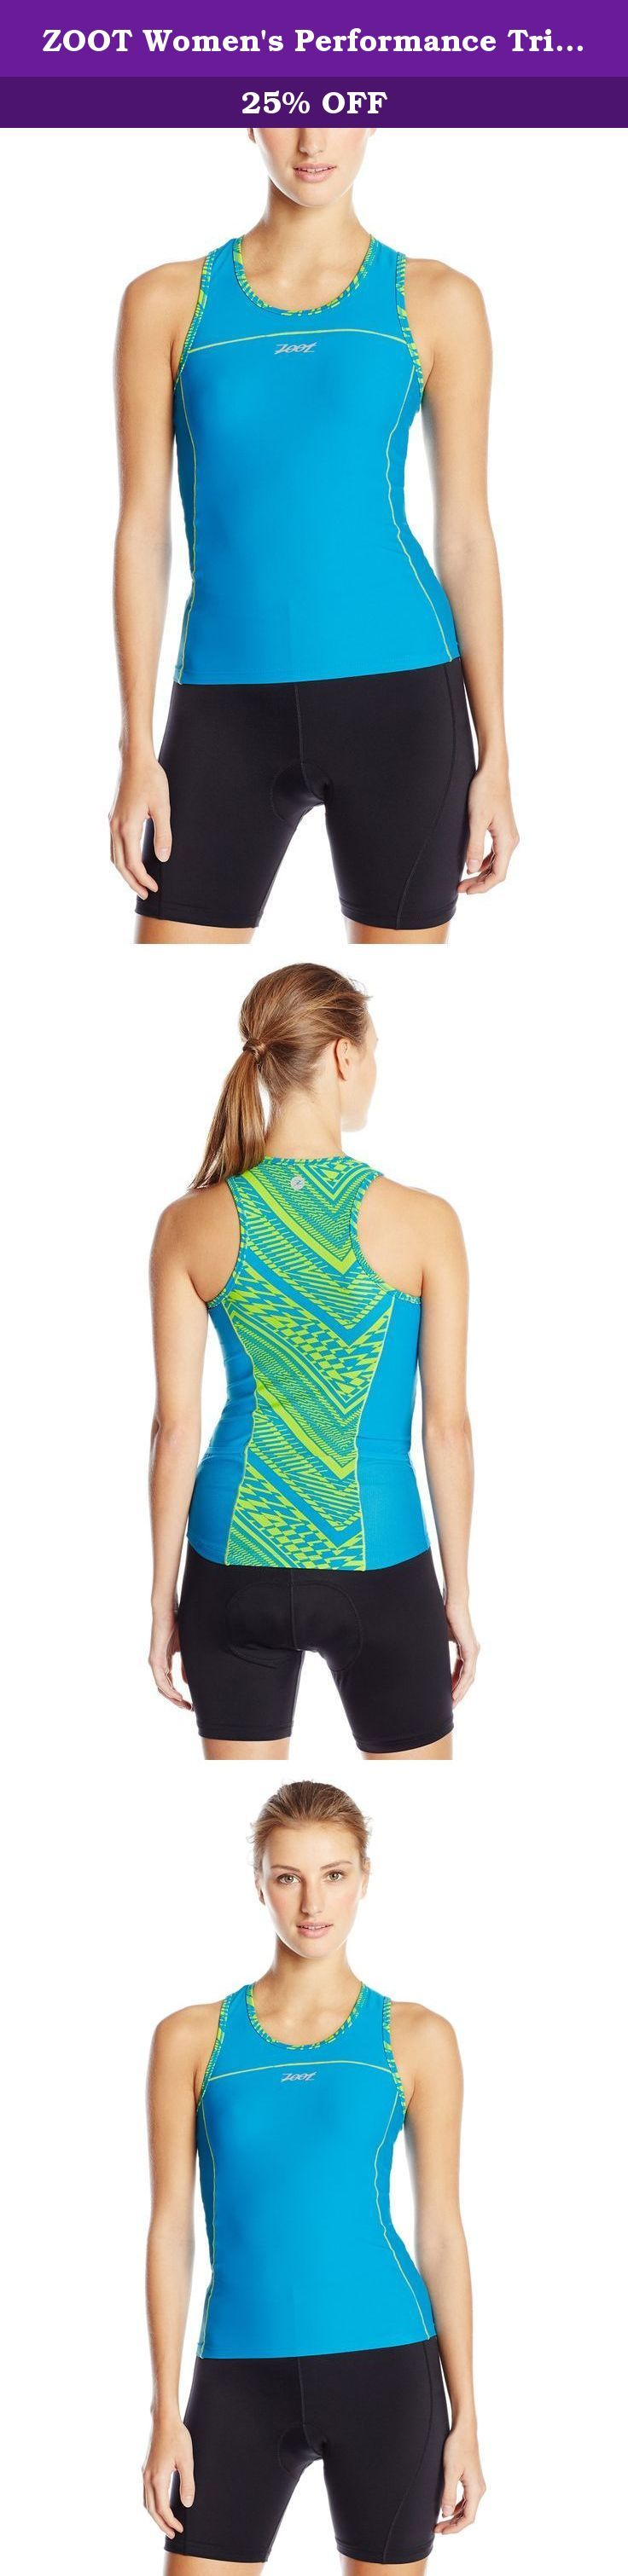 ZOOT Women's Performance Tri BYOB Tank Top, Tribal, X-Small. Your bra choice is yours with the Women's performance Tri byob tank. Take advantage of additional sun coverage with full front and back coverage. Premium performance Endura fabric will keep you dry, comfortable and well supported. Great for racing and training, the byob tank is great top for those who are looking for additional coverage.